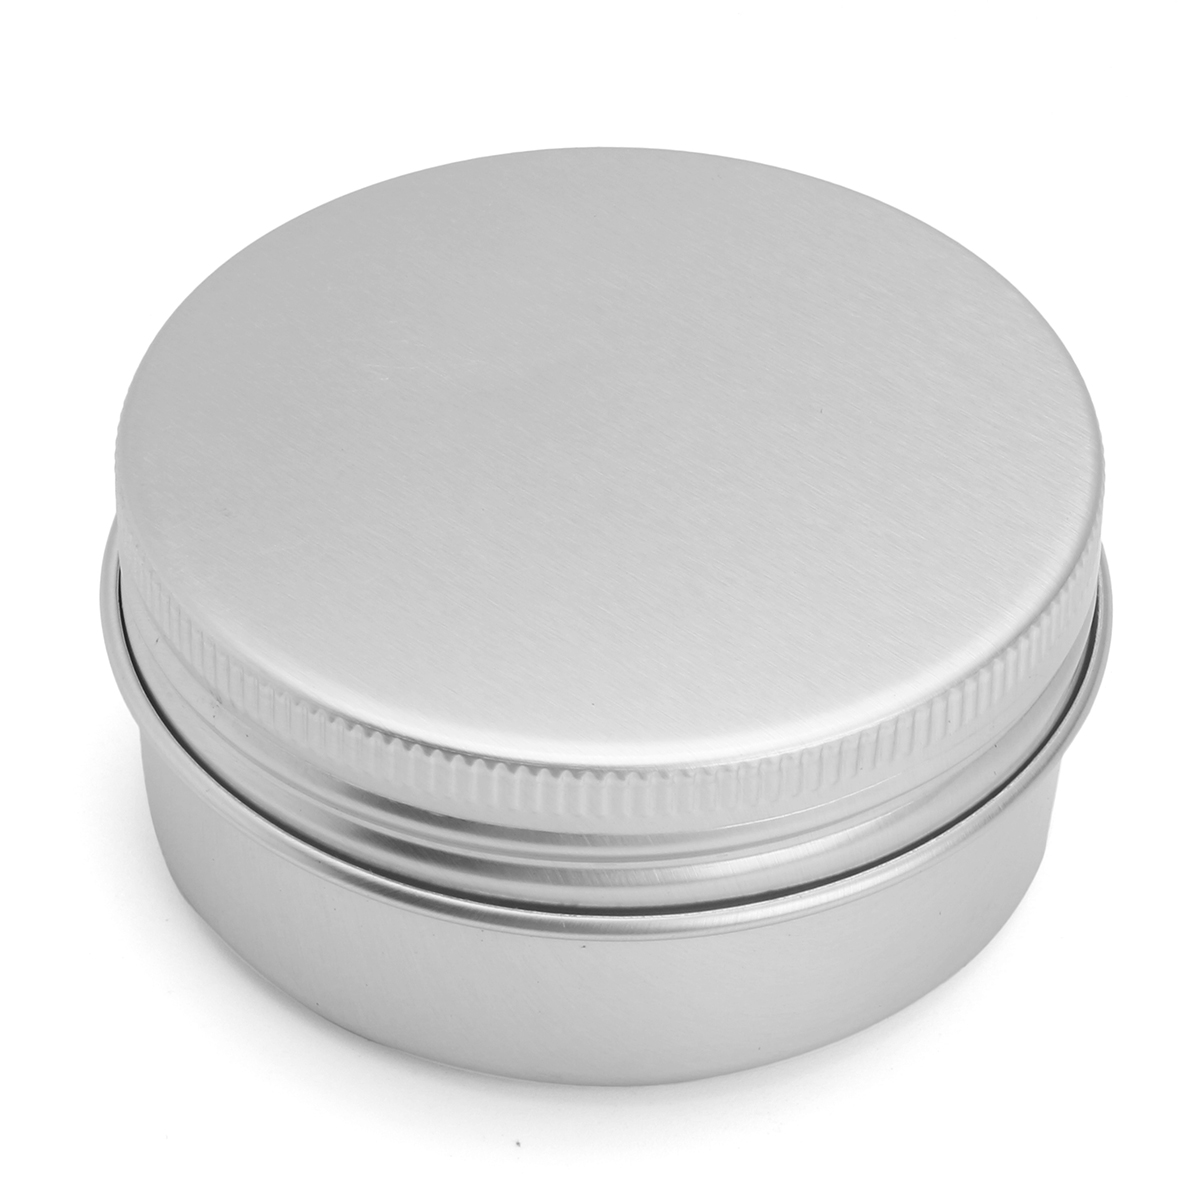 24Pcs 50G Aluminum Round Empty Jar Tin Screw Top Lid Cosmetic Sample Storage Container